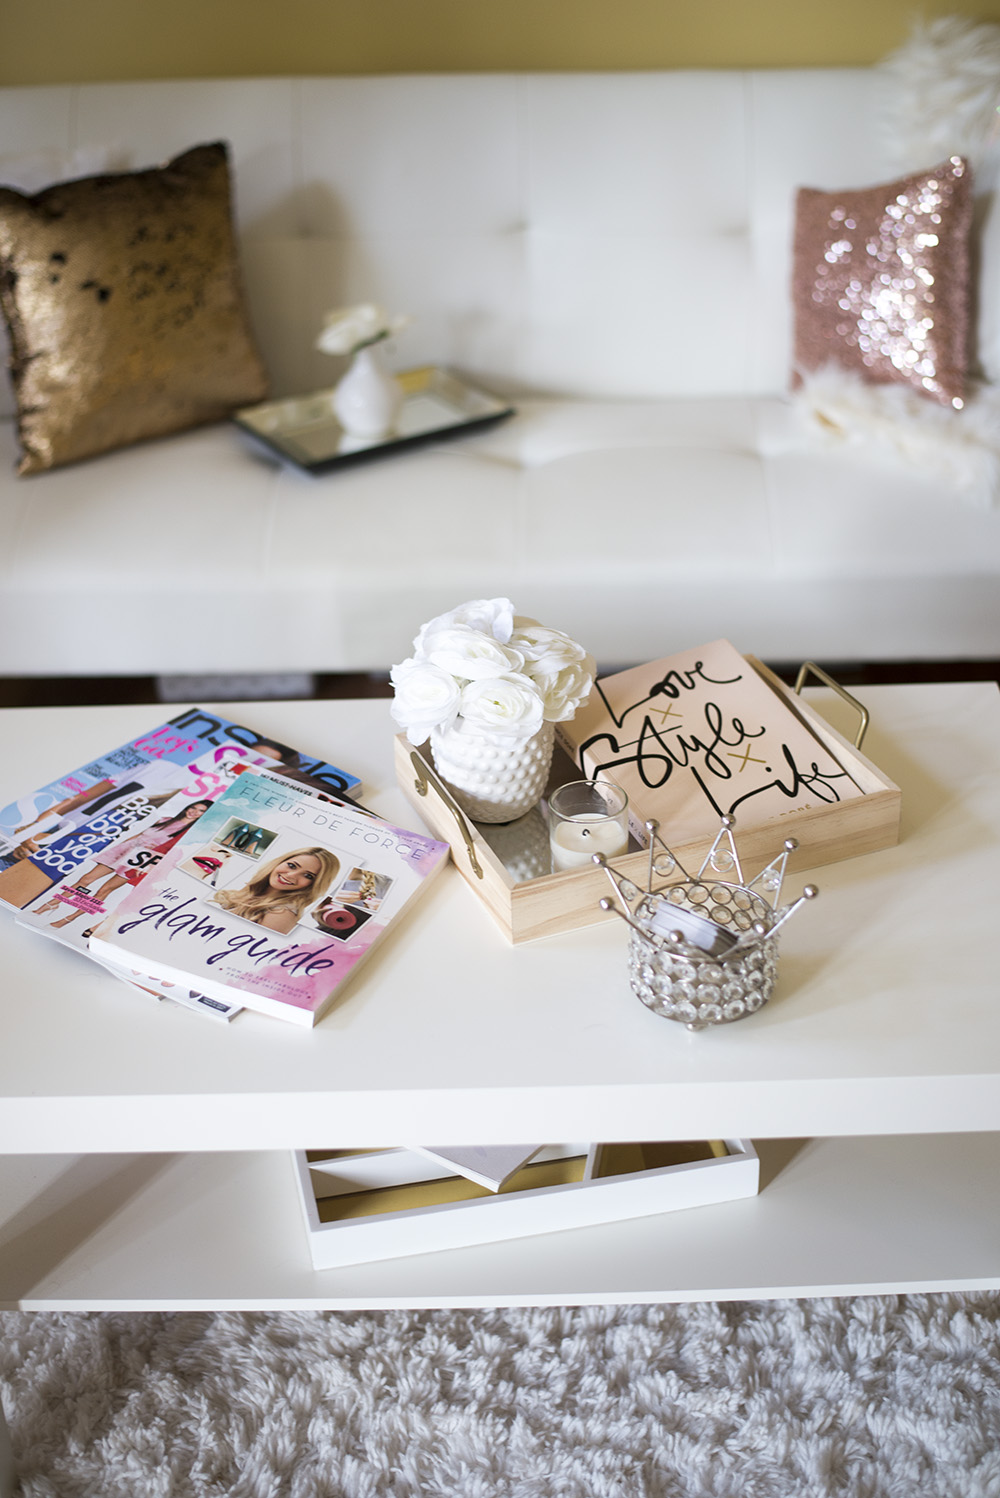 Home office tour featuring products from Target, Ikea, Marshall's, and more!